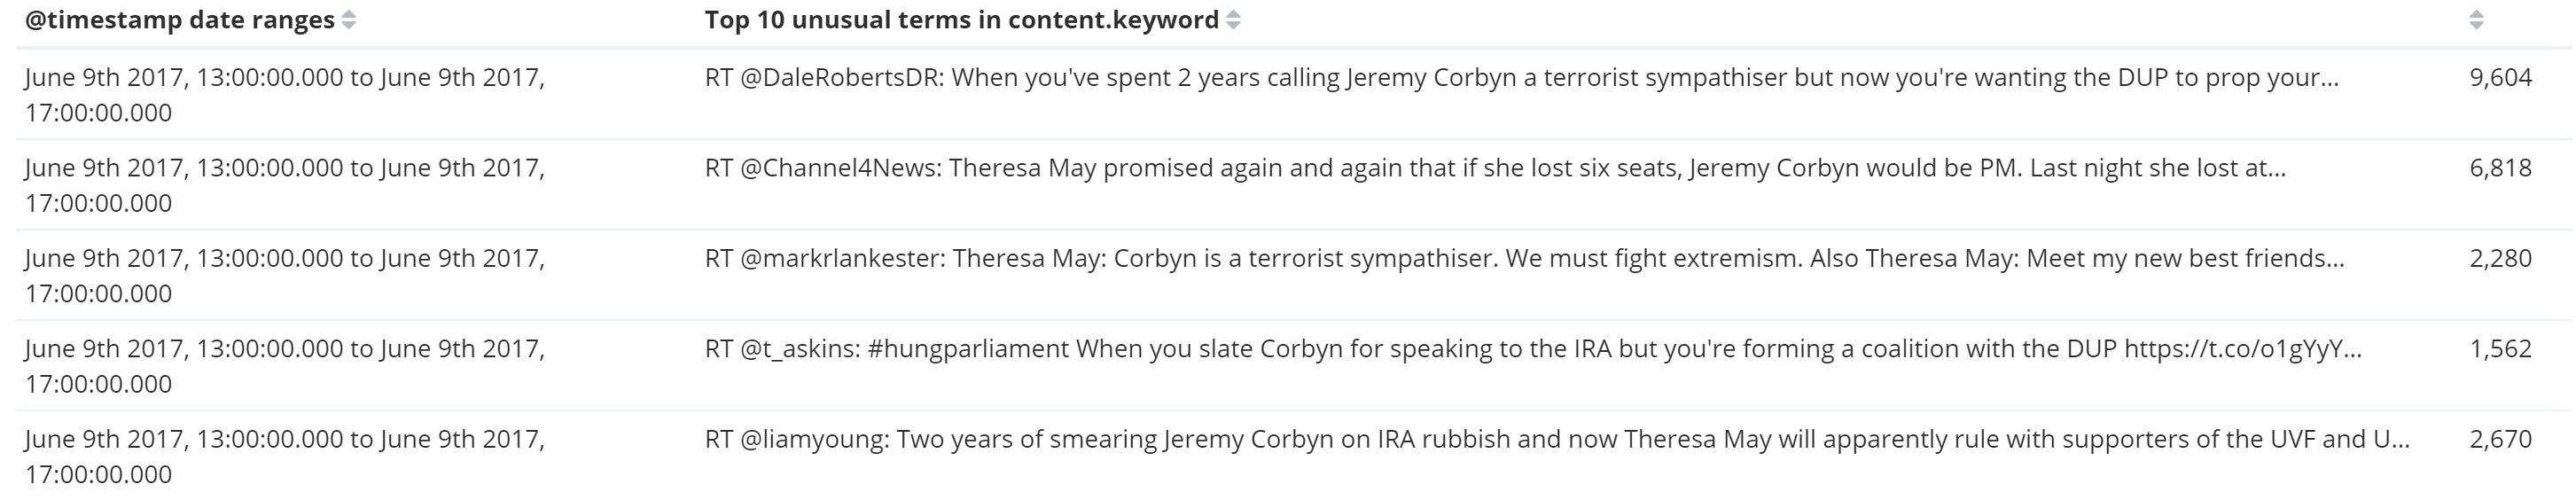 Theresa May Tweet Sentiment drop